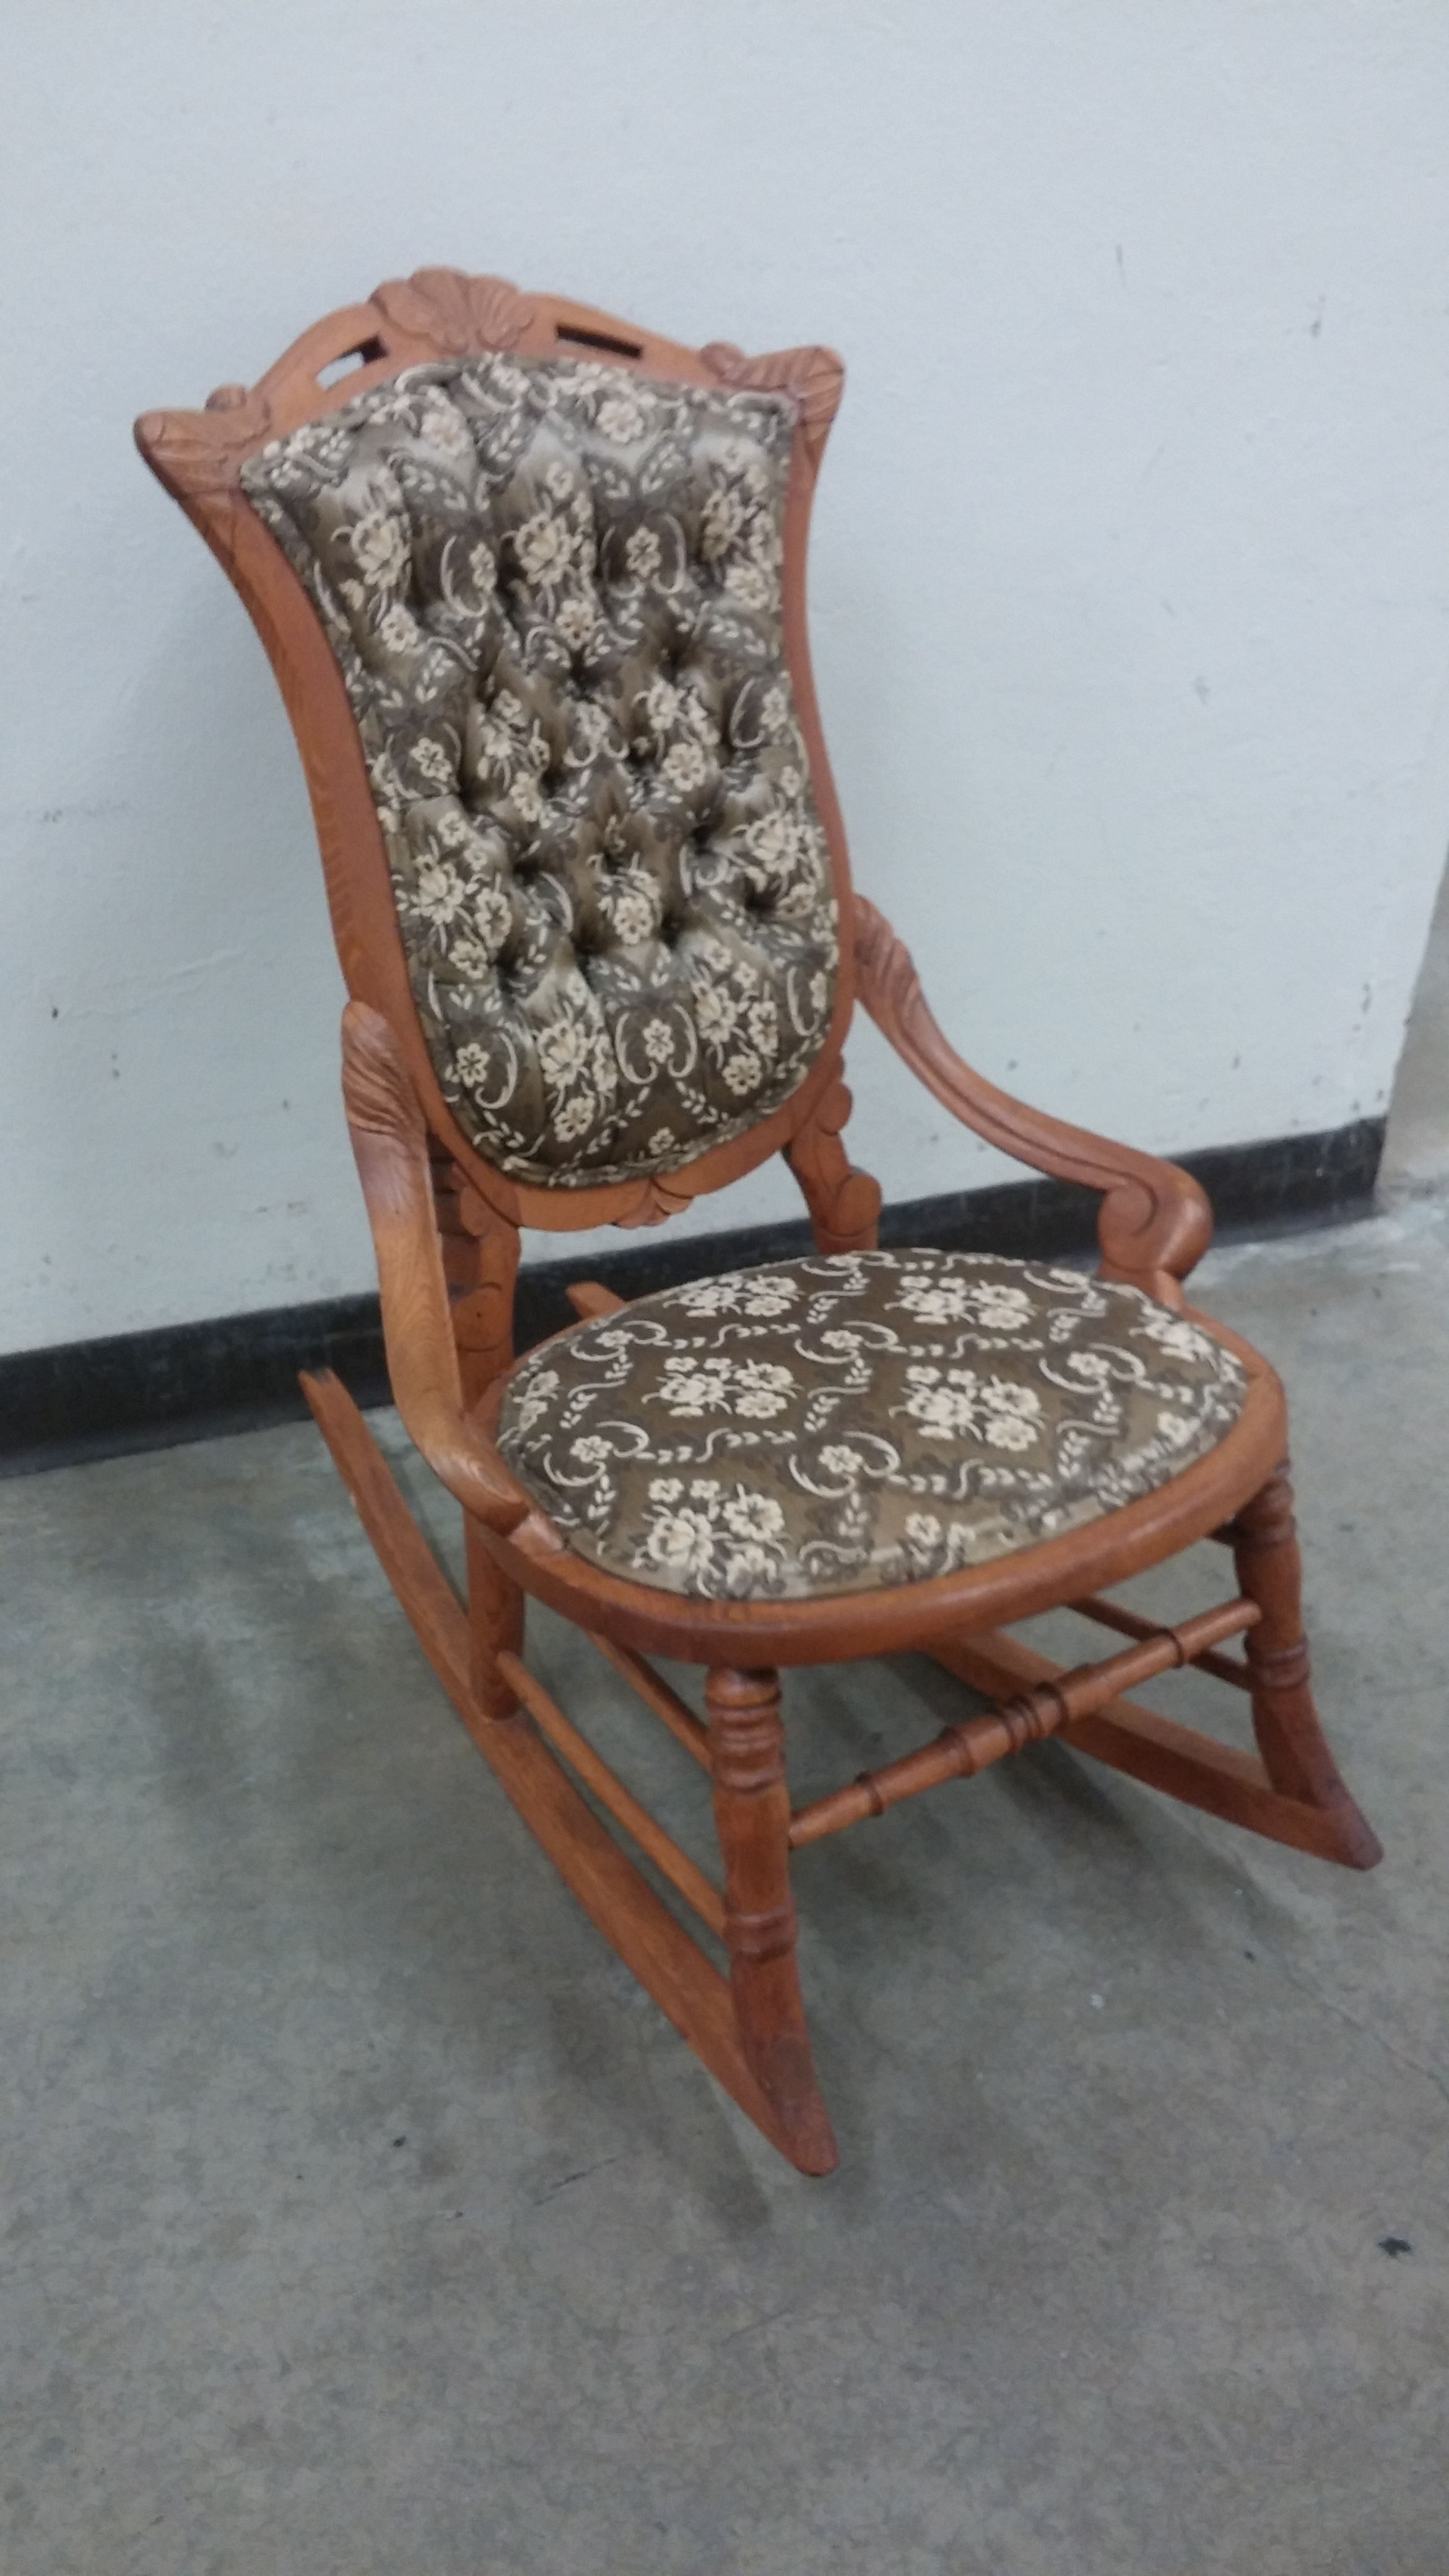 Small Rocking Chairs Desk Chair Cushion Staples Olive Green Throne Room Arm